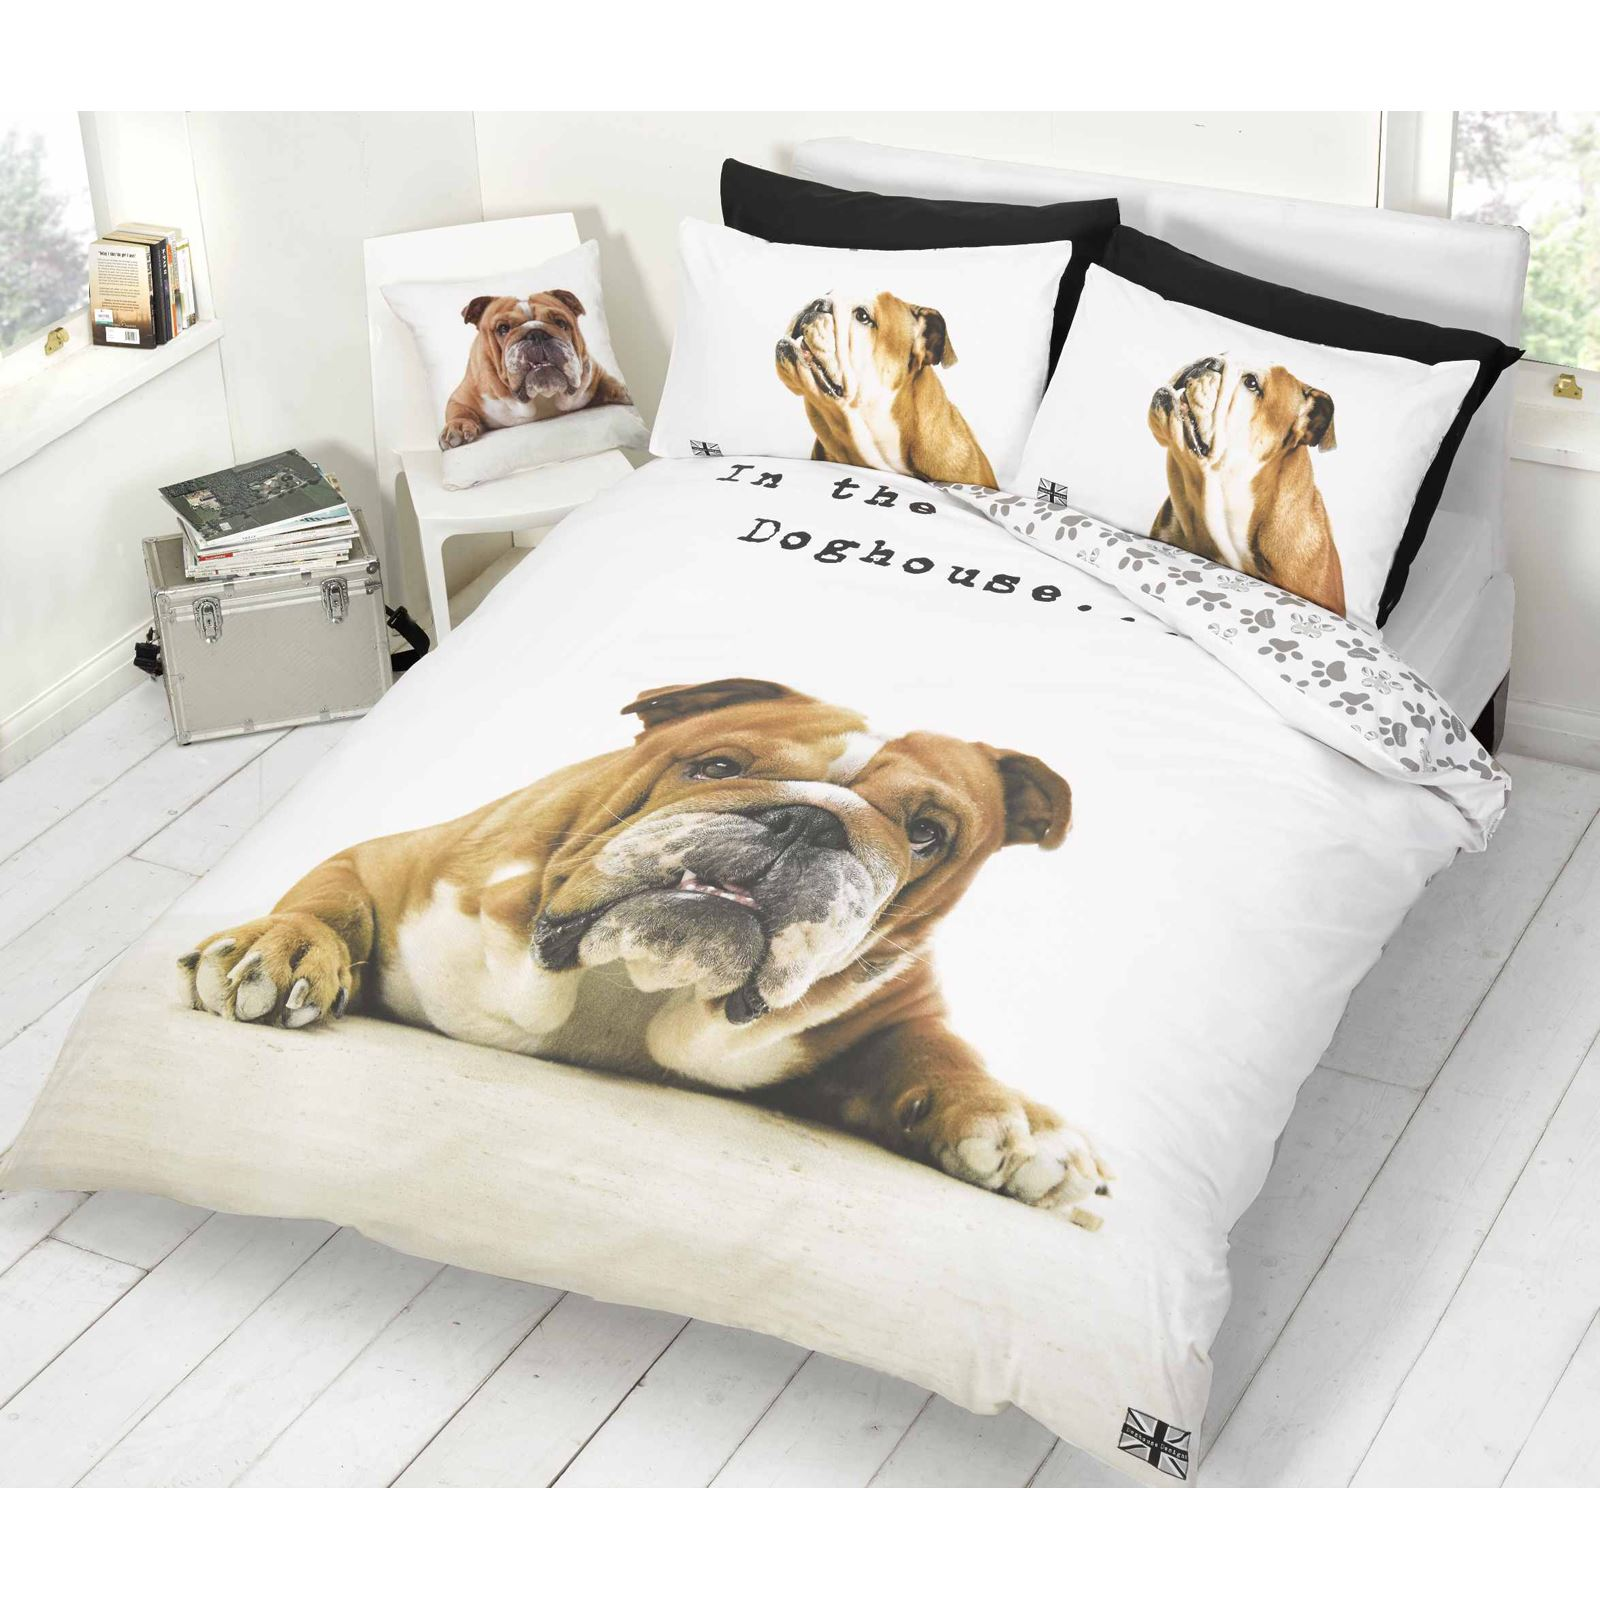 BARRY BULLDOG DUVET COVER SET ANIMAL PRINT DOG BEDDING   SINGLE U0026 DOUBLE |  EBay